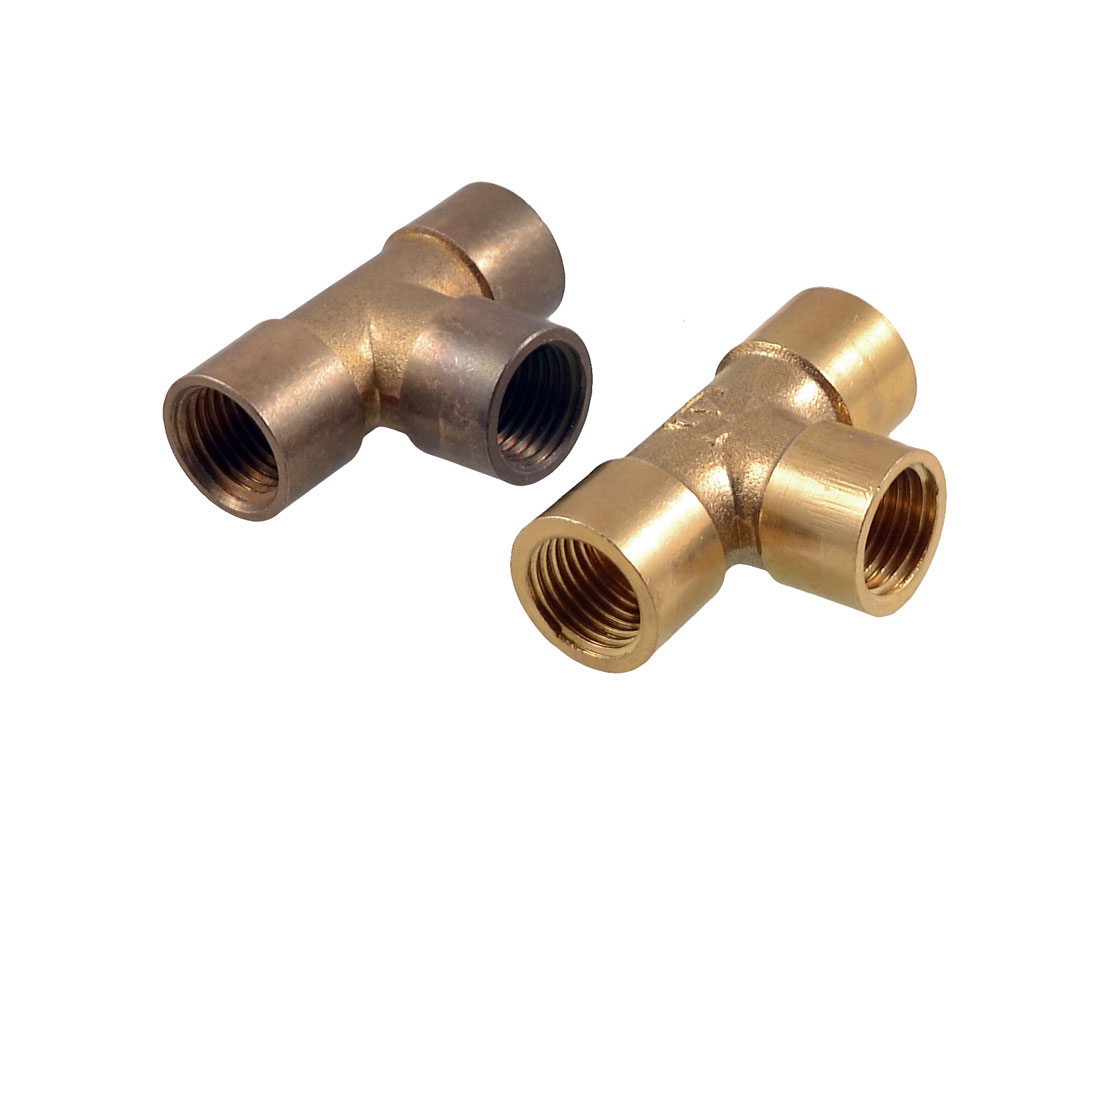 "2 Pcs G 1/4"" Thread Size 3 Way Water Hose Female Pipe Tee Connector Gold Tone"